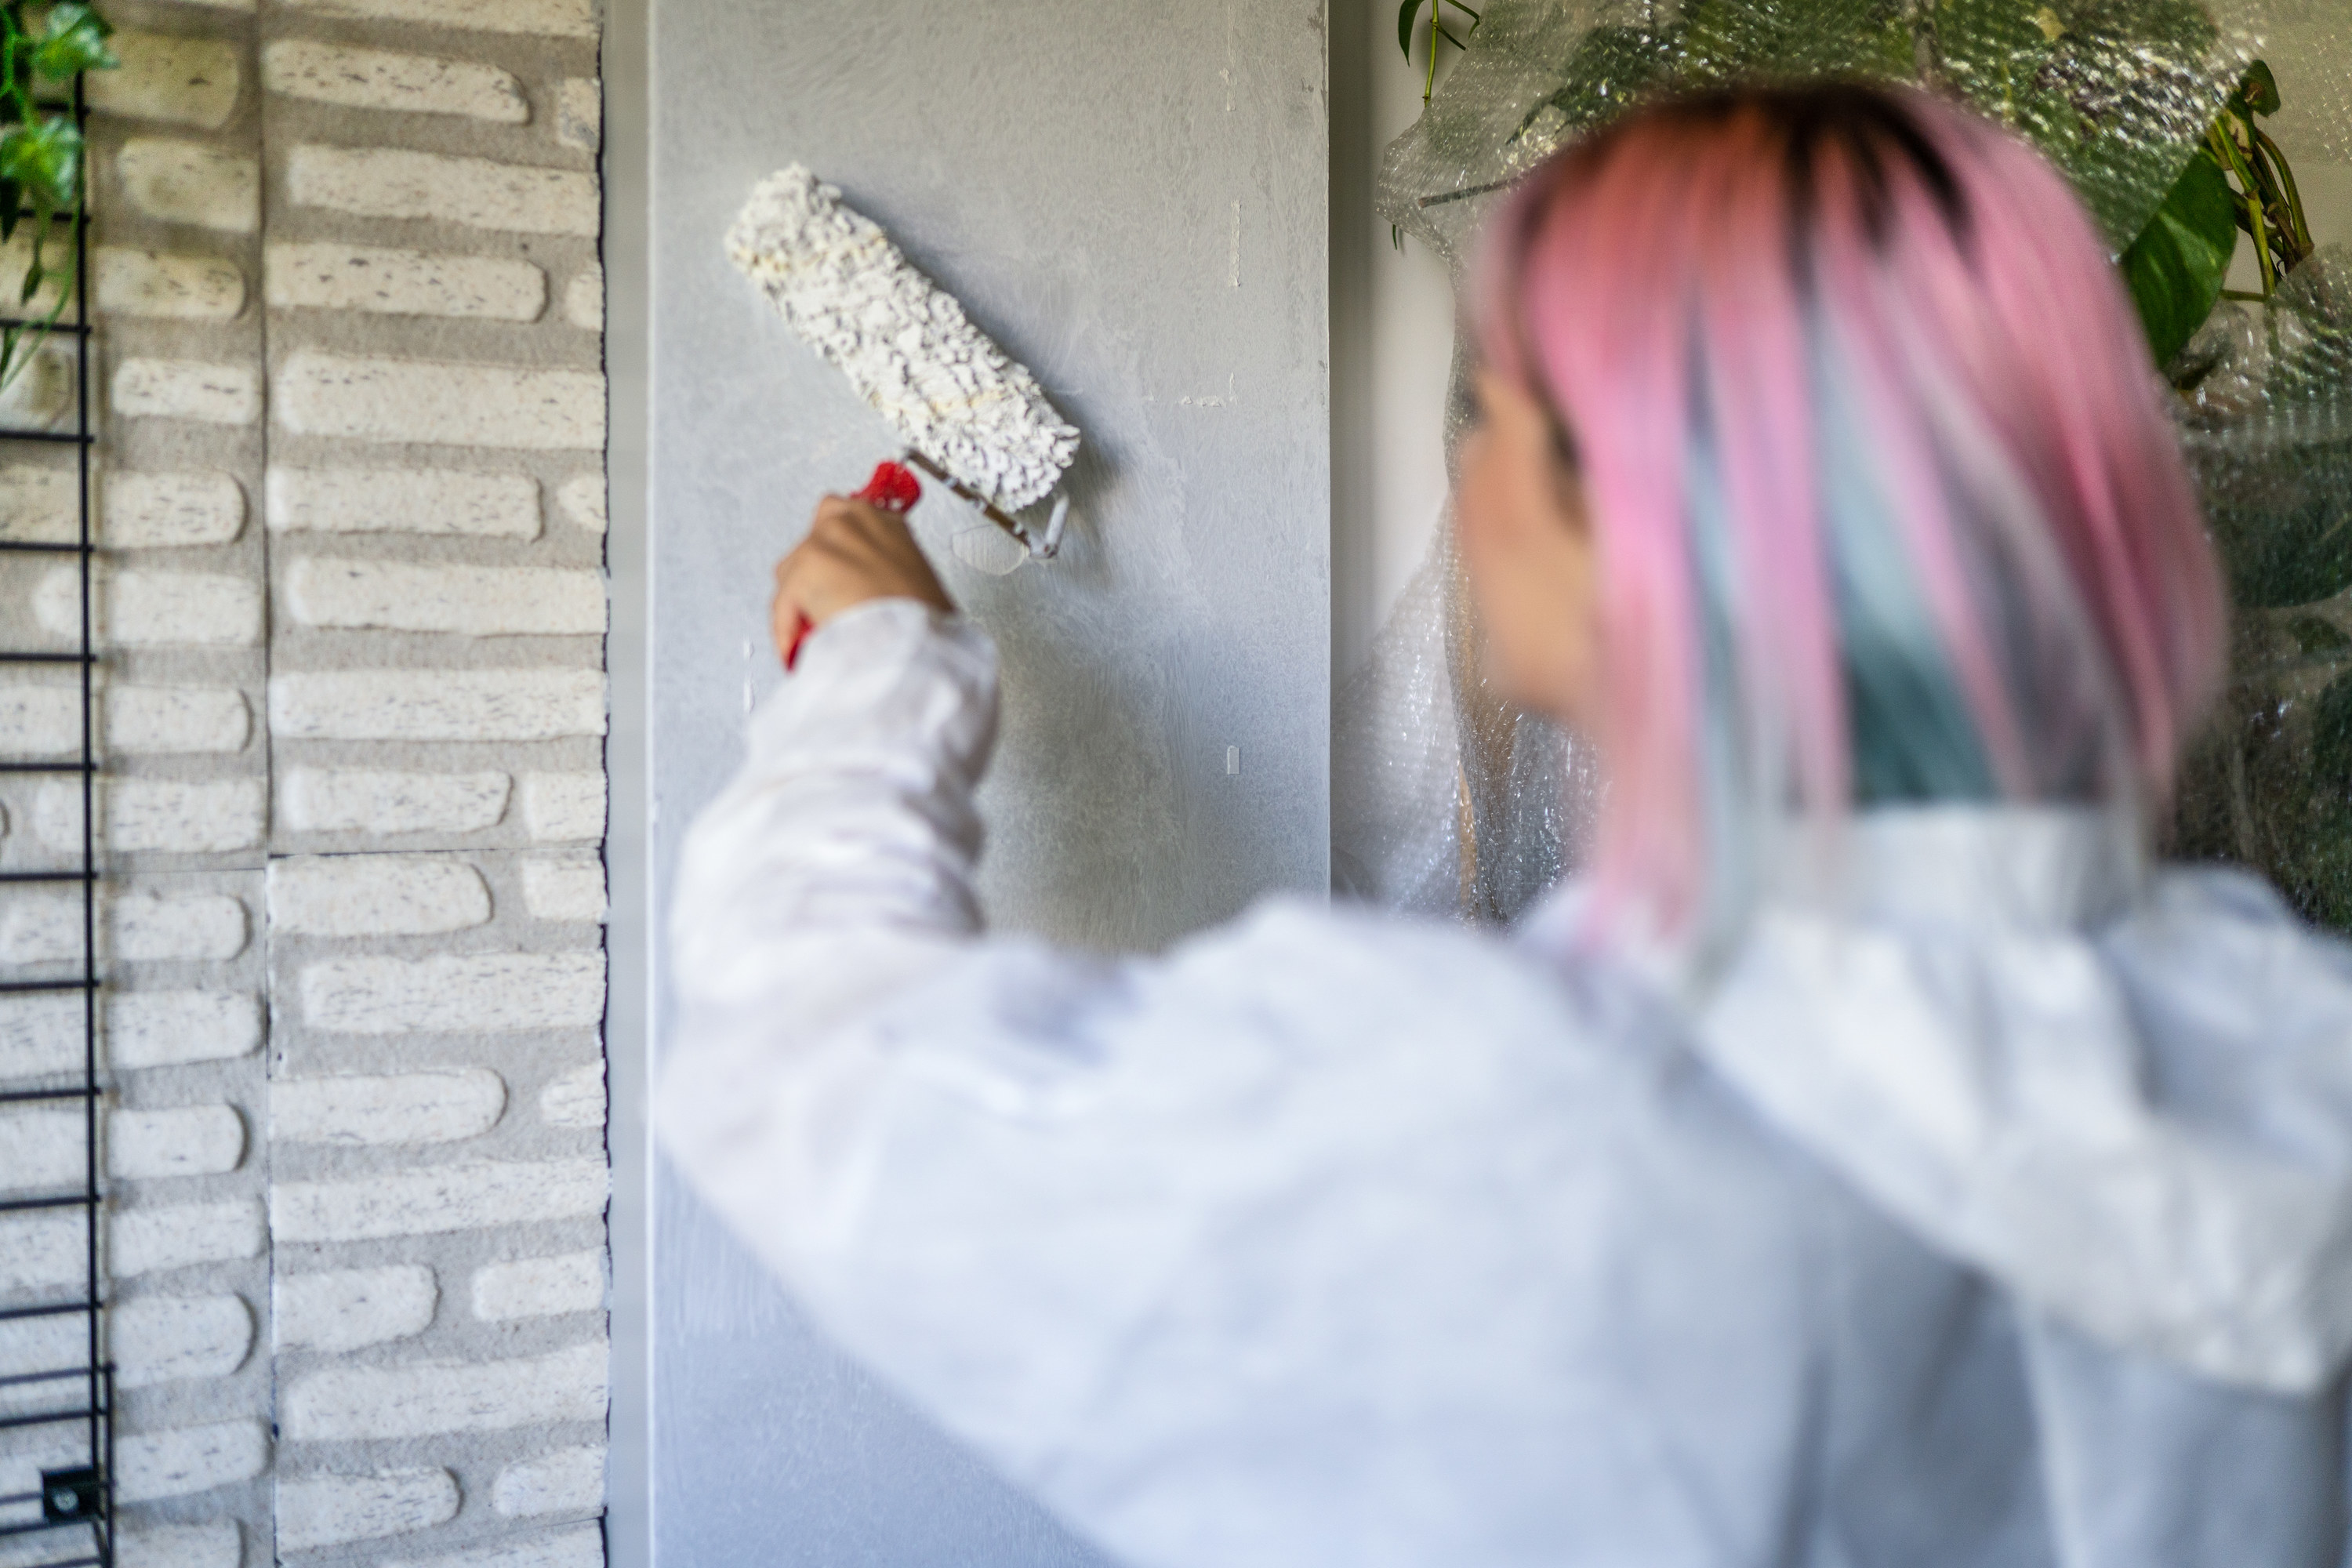 A woman with colorful hair painting a wall with a roller